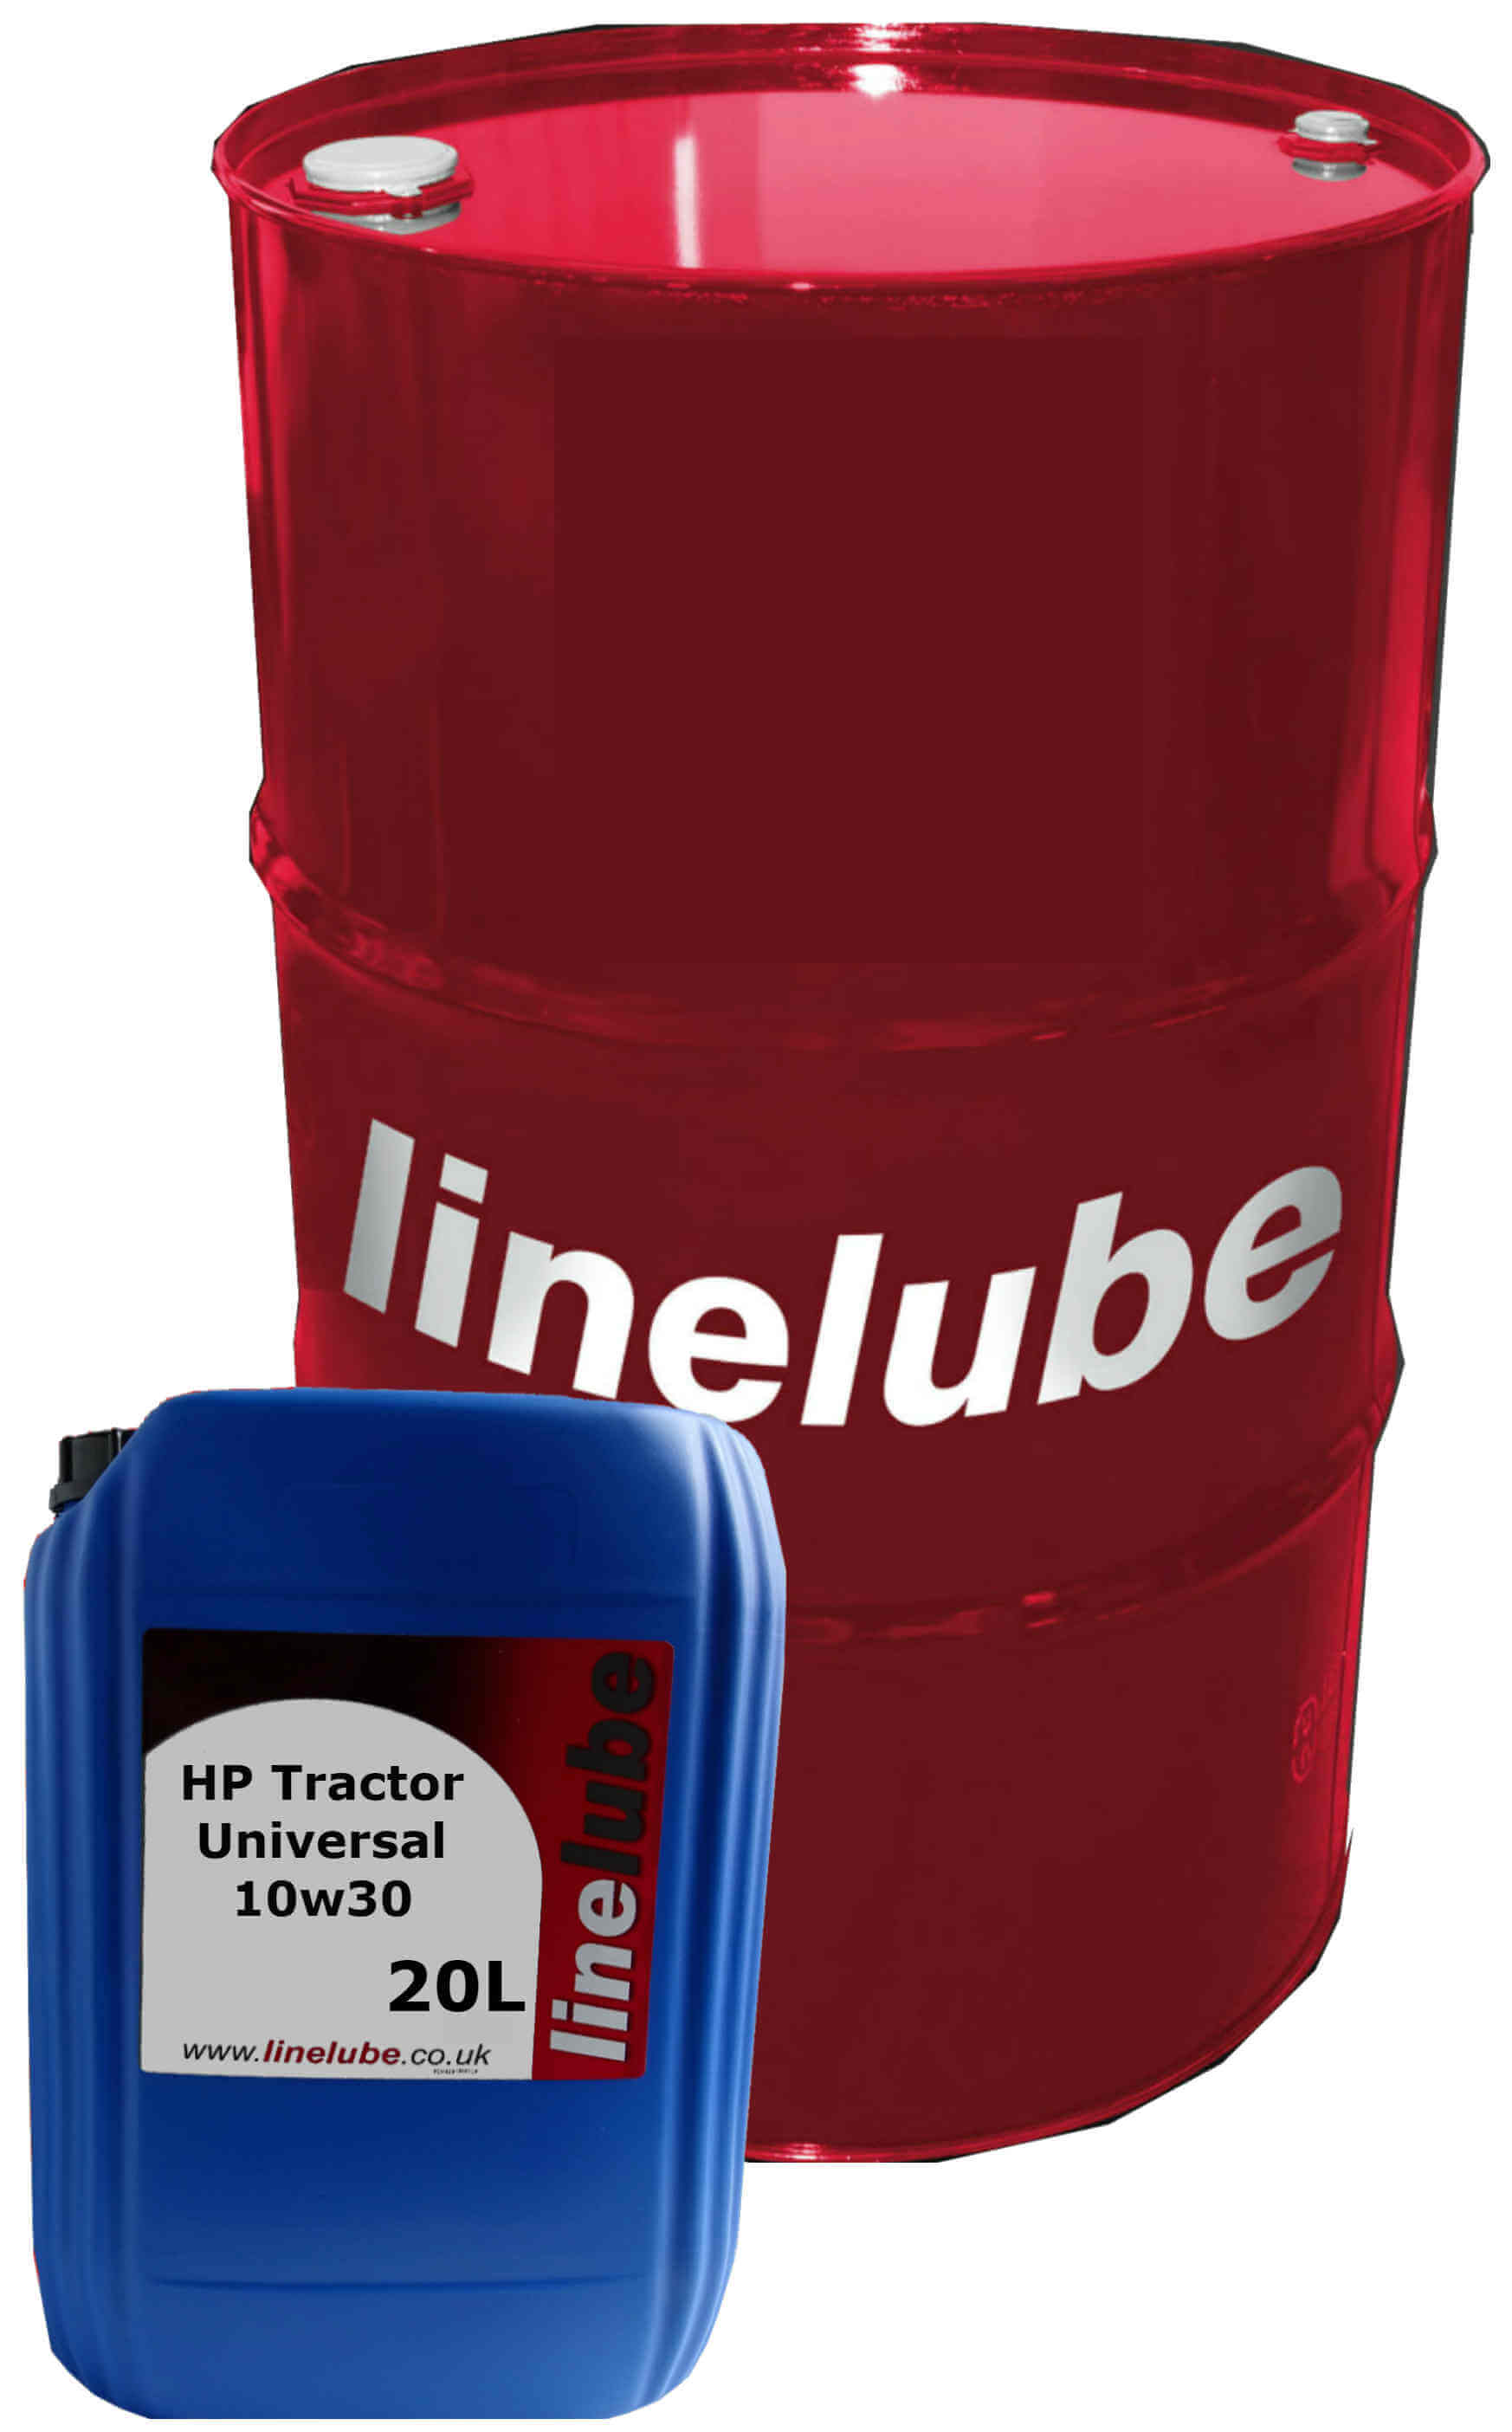 Linelube HP Tractor Universal 10W-30